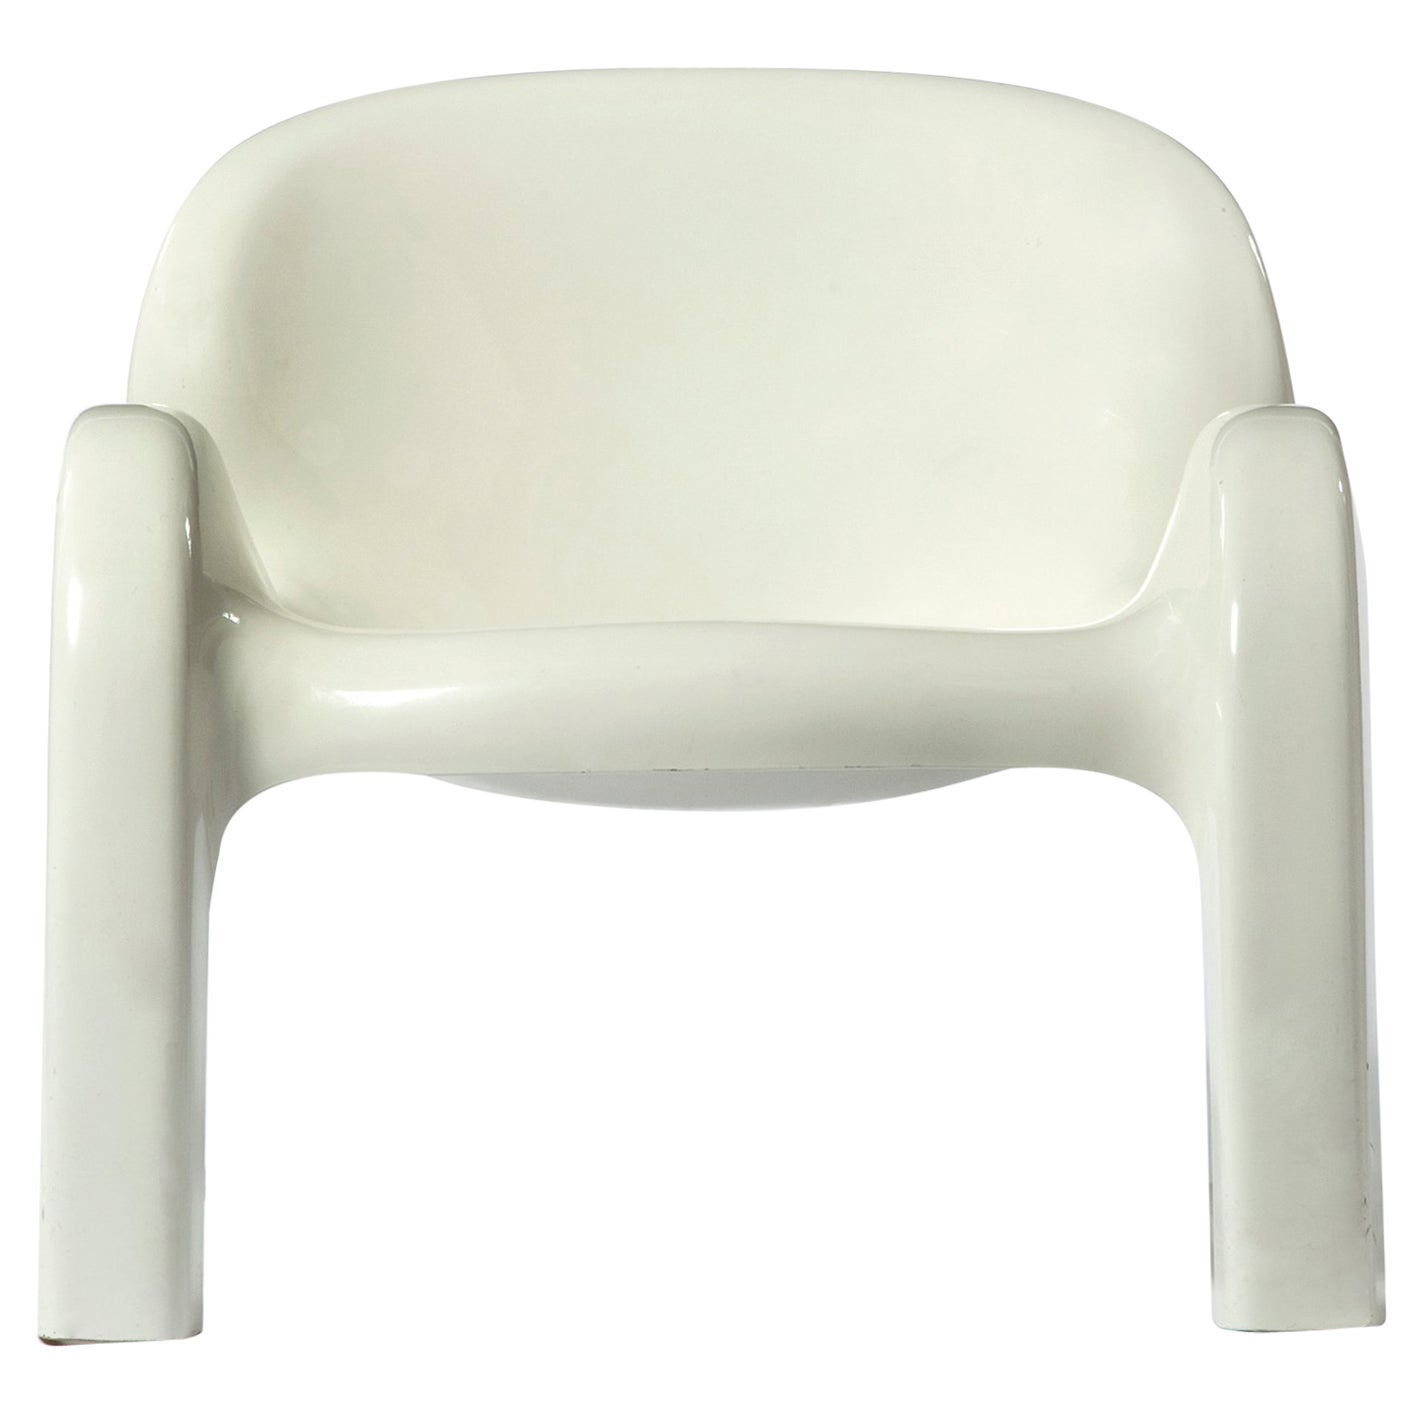 GN2 White Plastic Lounge Chair by Peter Ghyczy, 1970